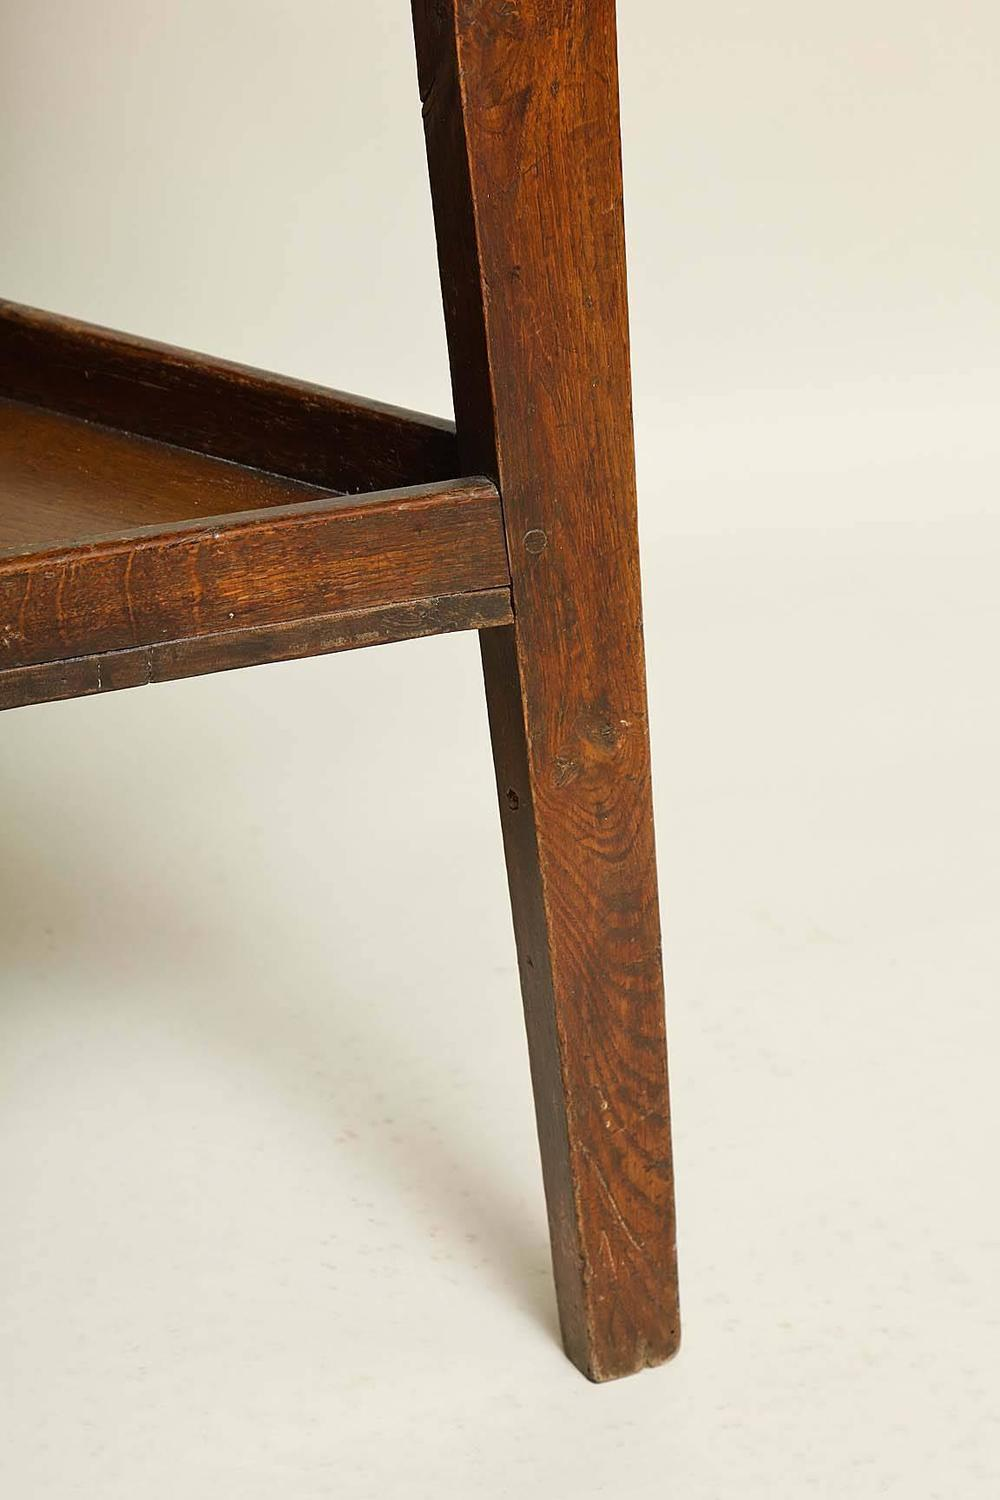 Arts and crafts period cricket table for sale at 1stdibs for The cricket arts and crafts